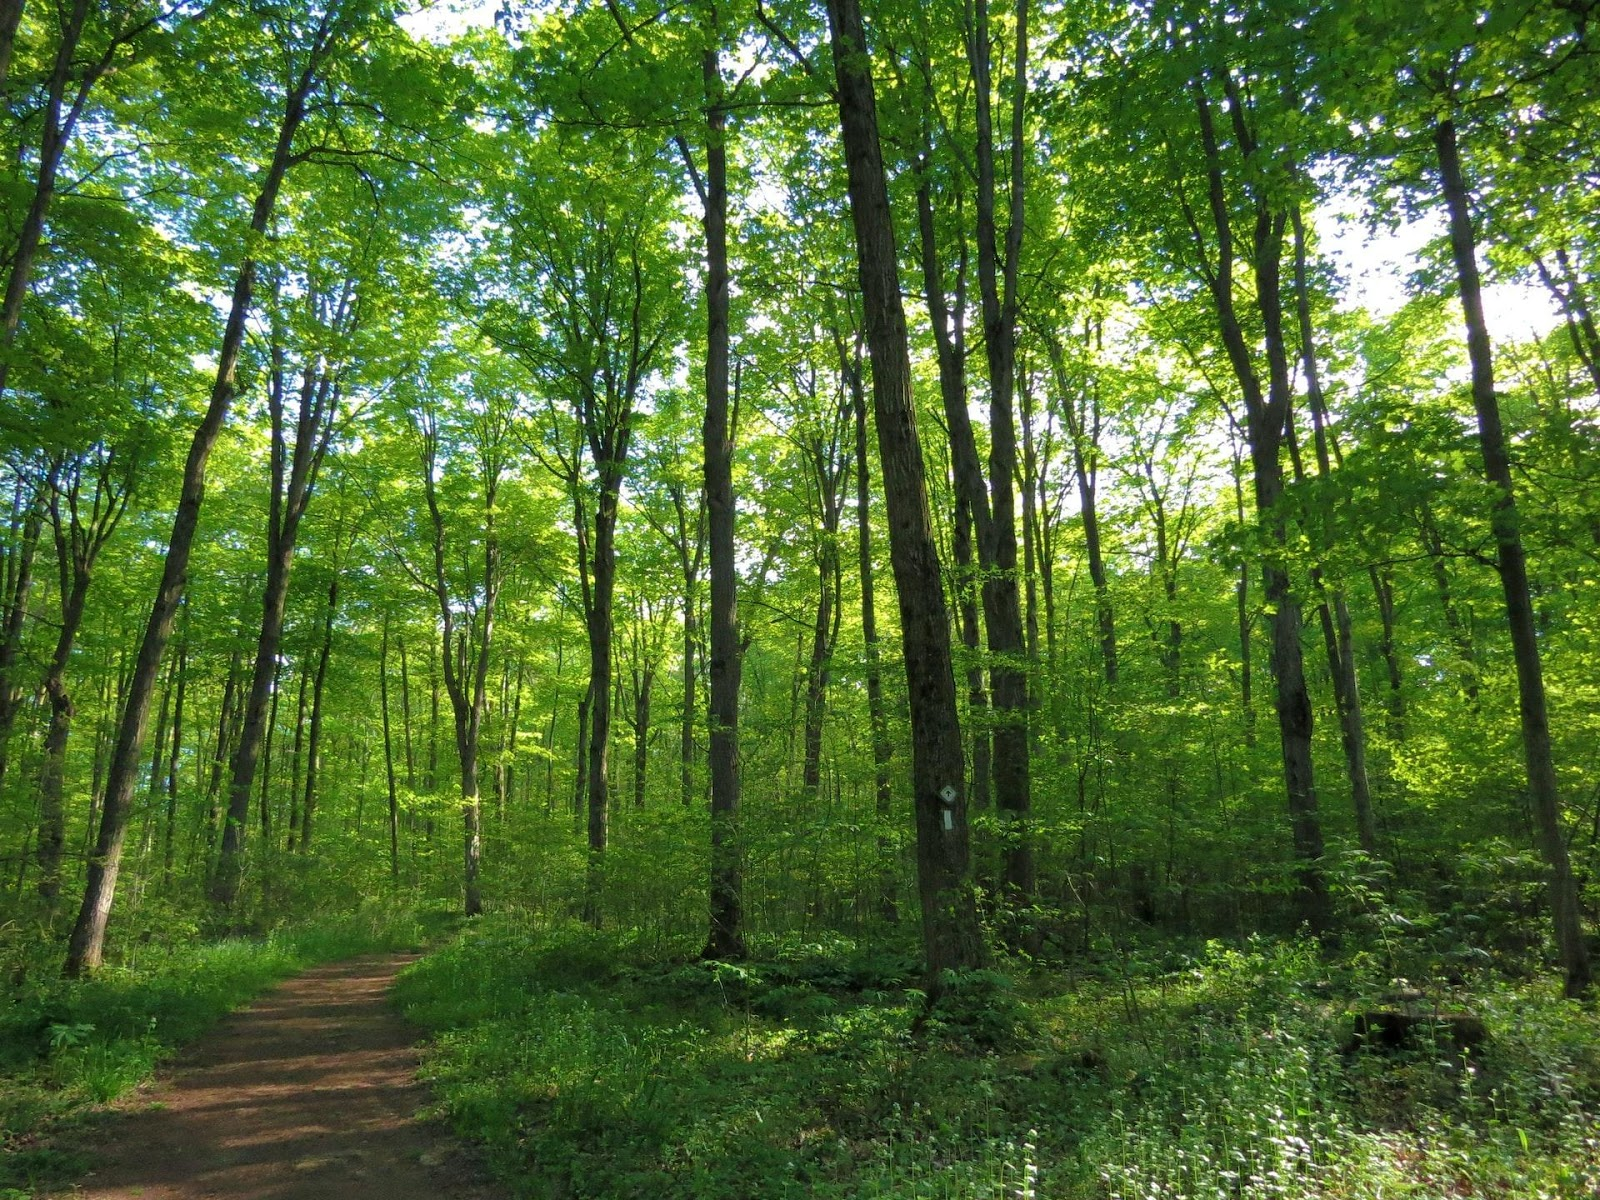 The Bruce trail is one of the most famous long distance hiking trails in Canada